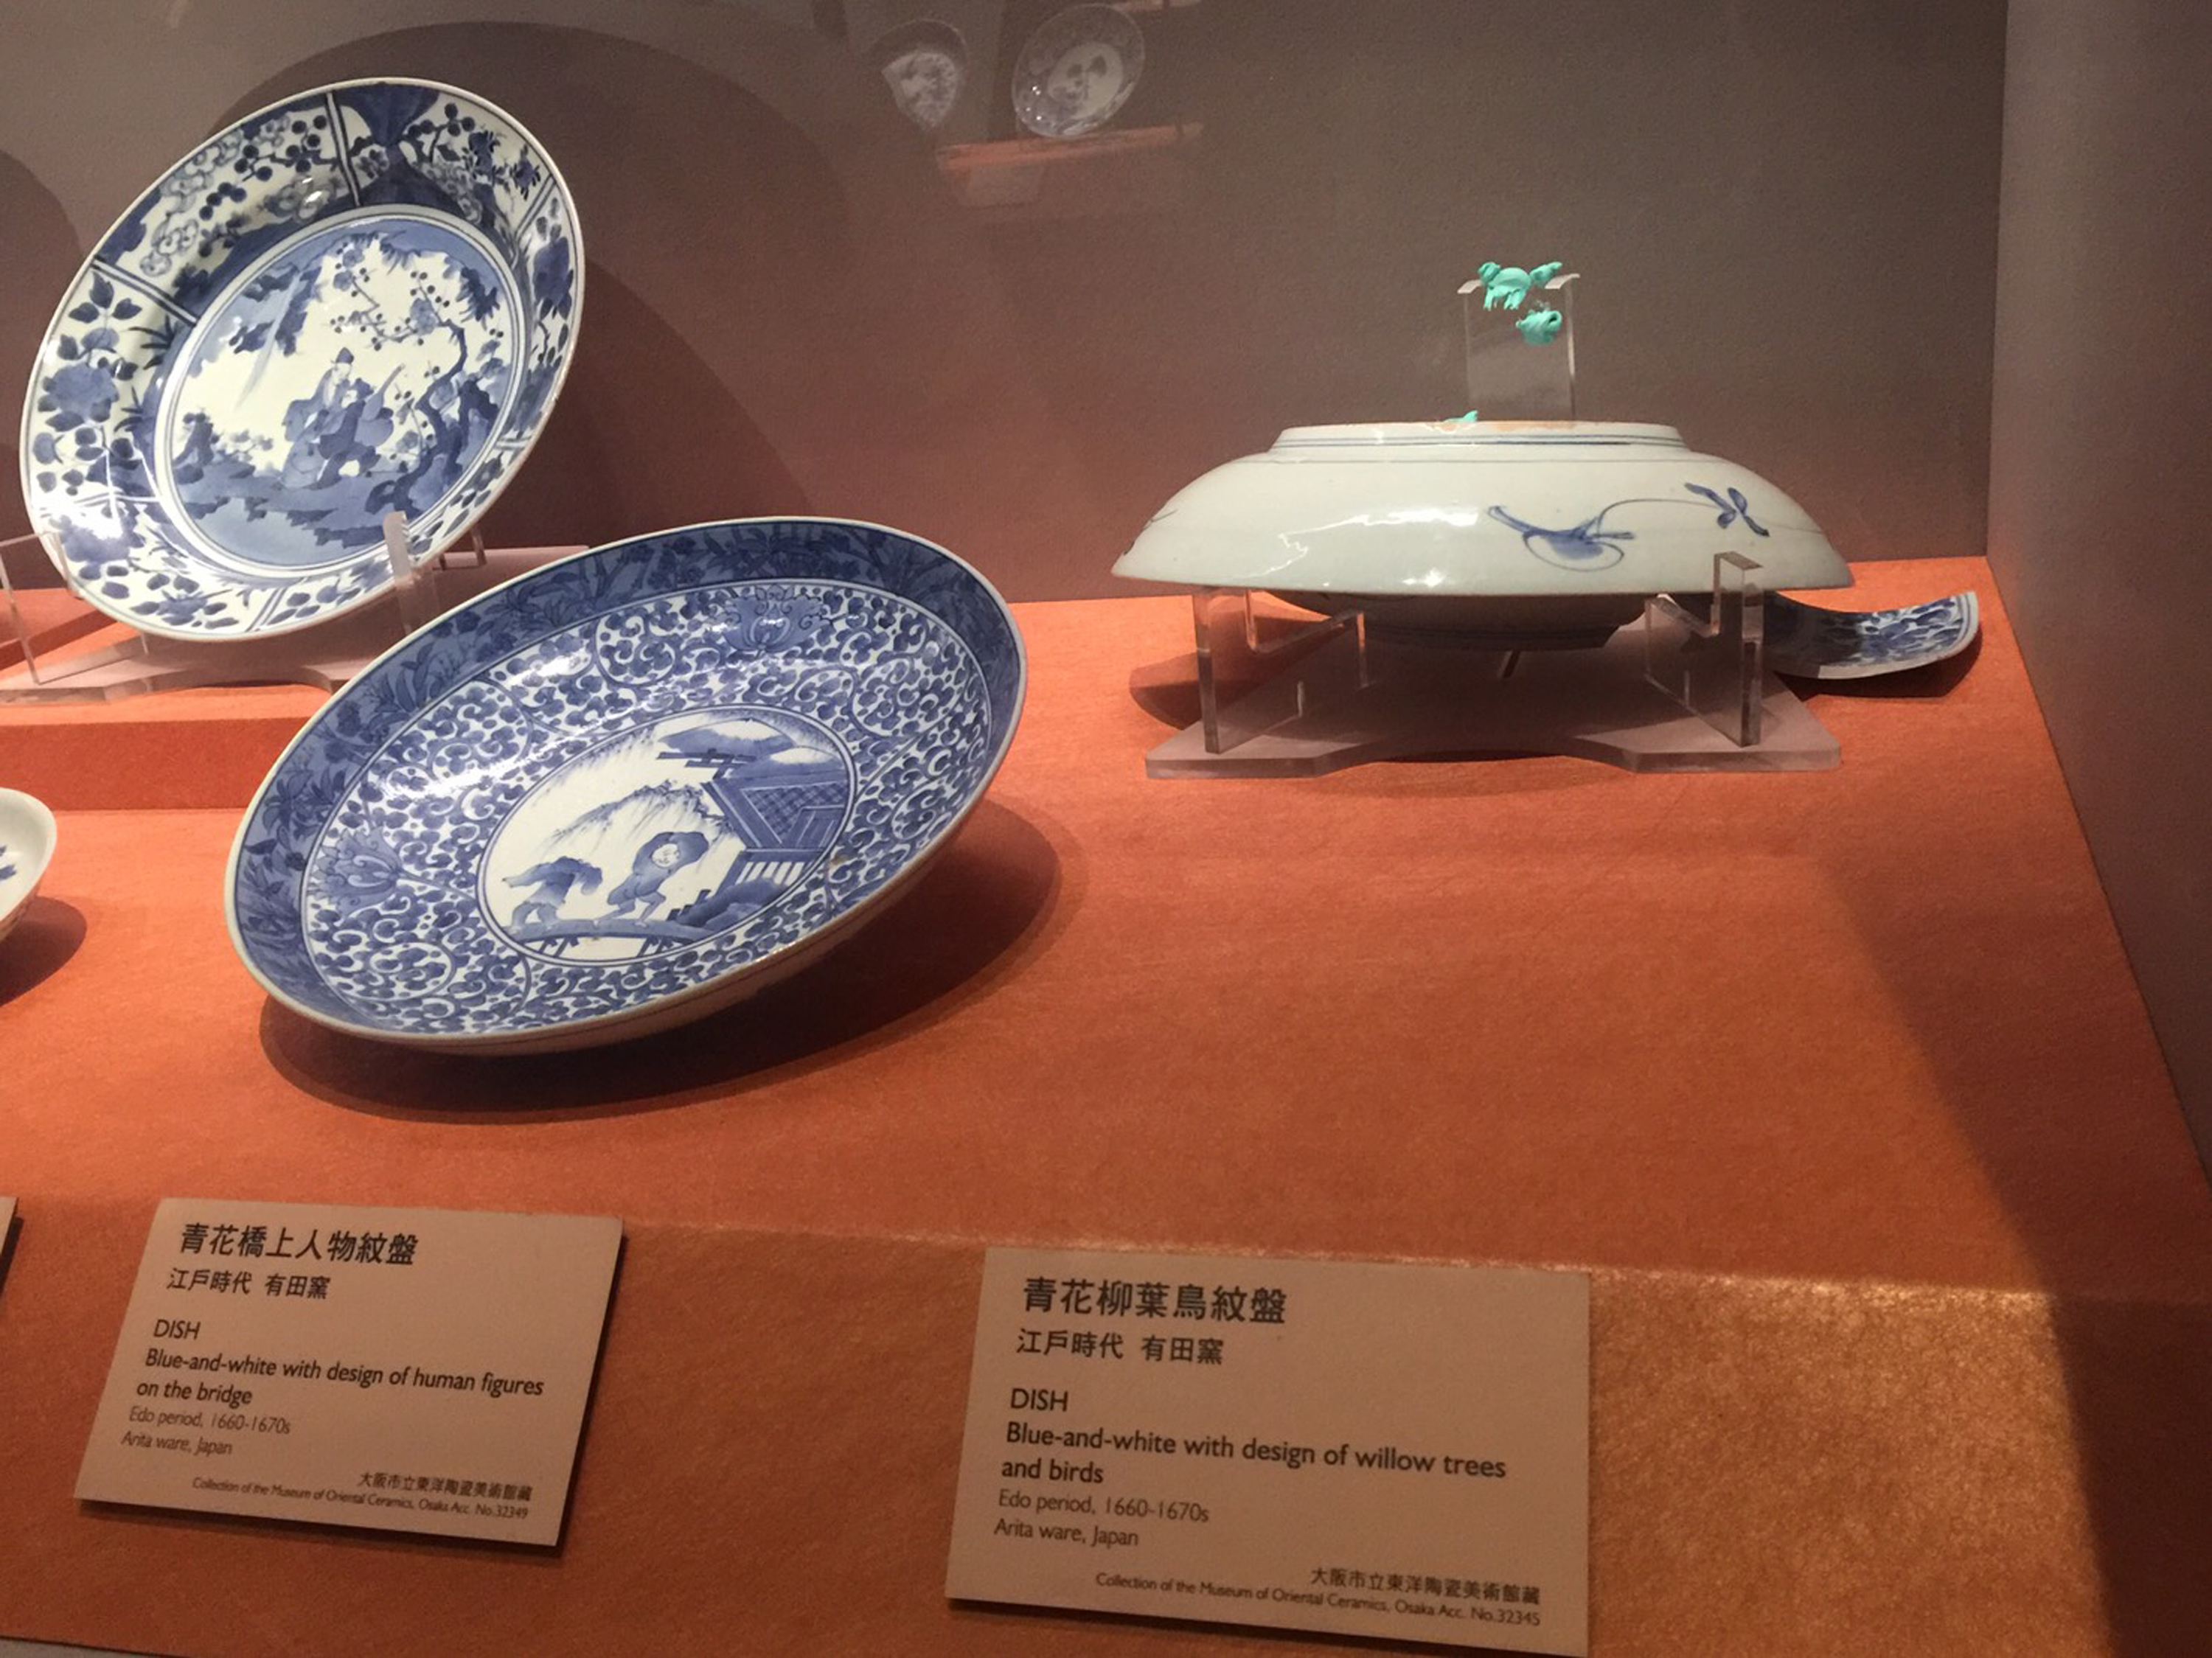 17th-century Japanese dish falls to pieces at NPM Southern Branch.